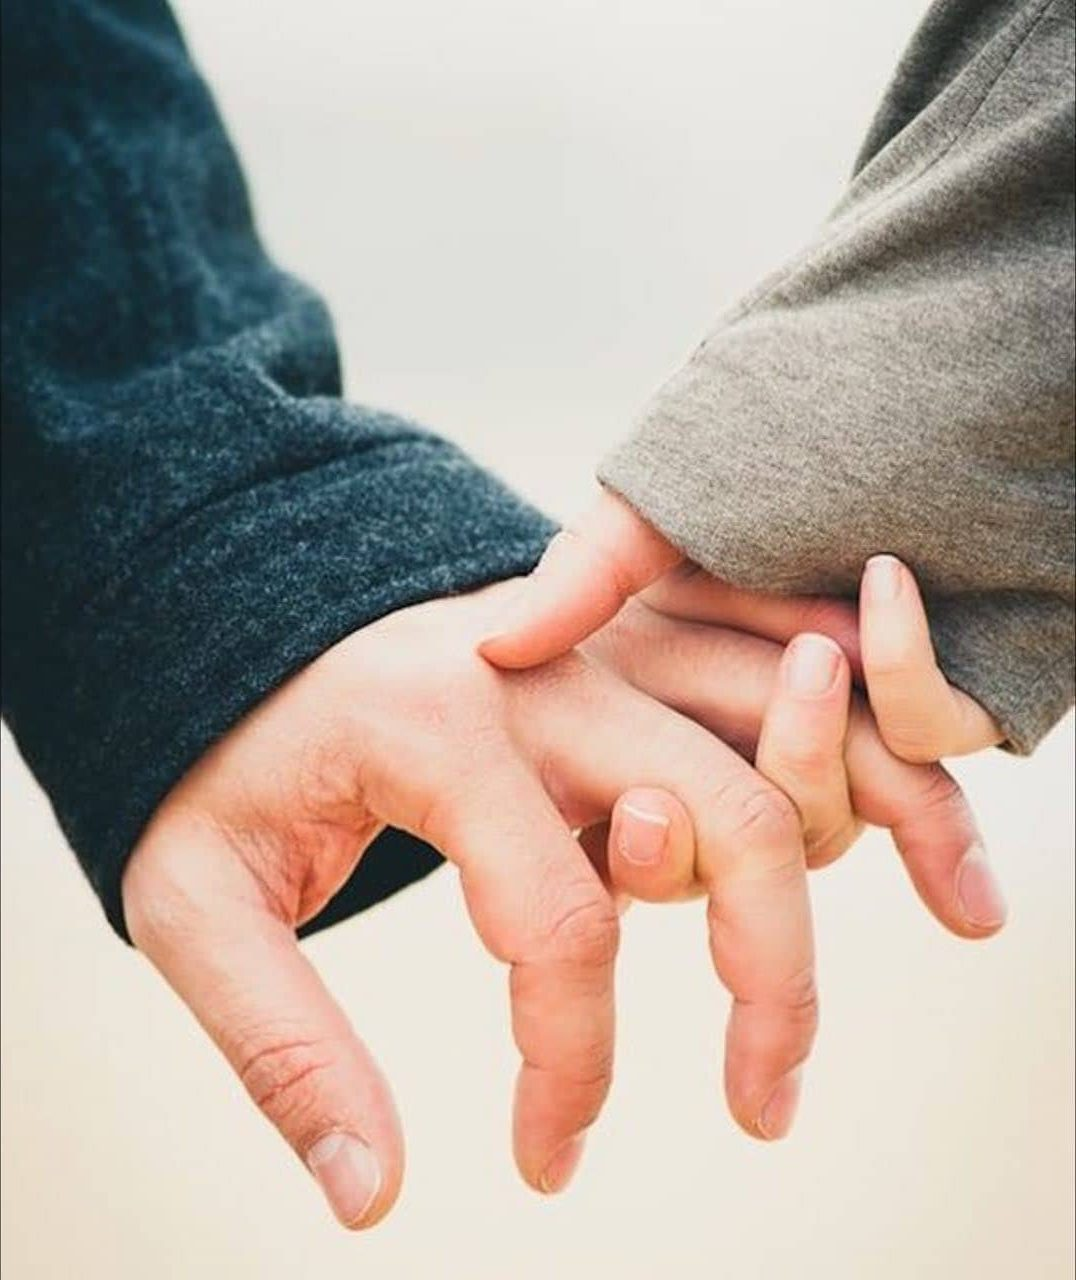 Loosely interlaced fingers | The Way You're Holding Hands Reveals More About Your Relationship Than You Think  | Her Beauty